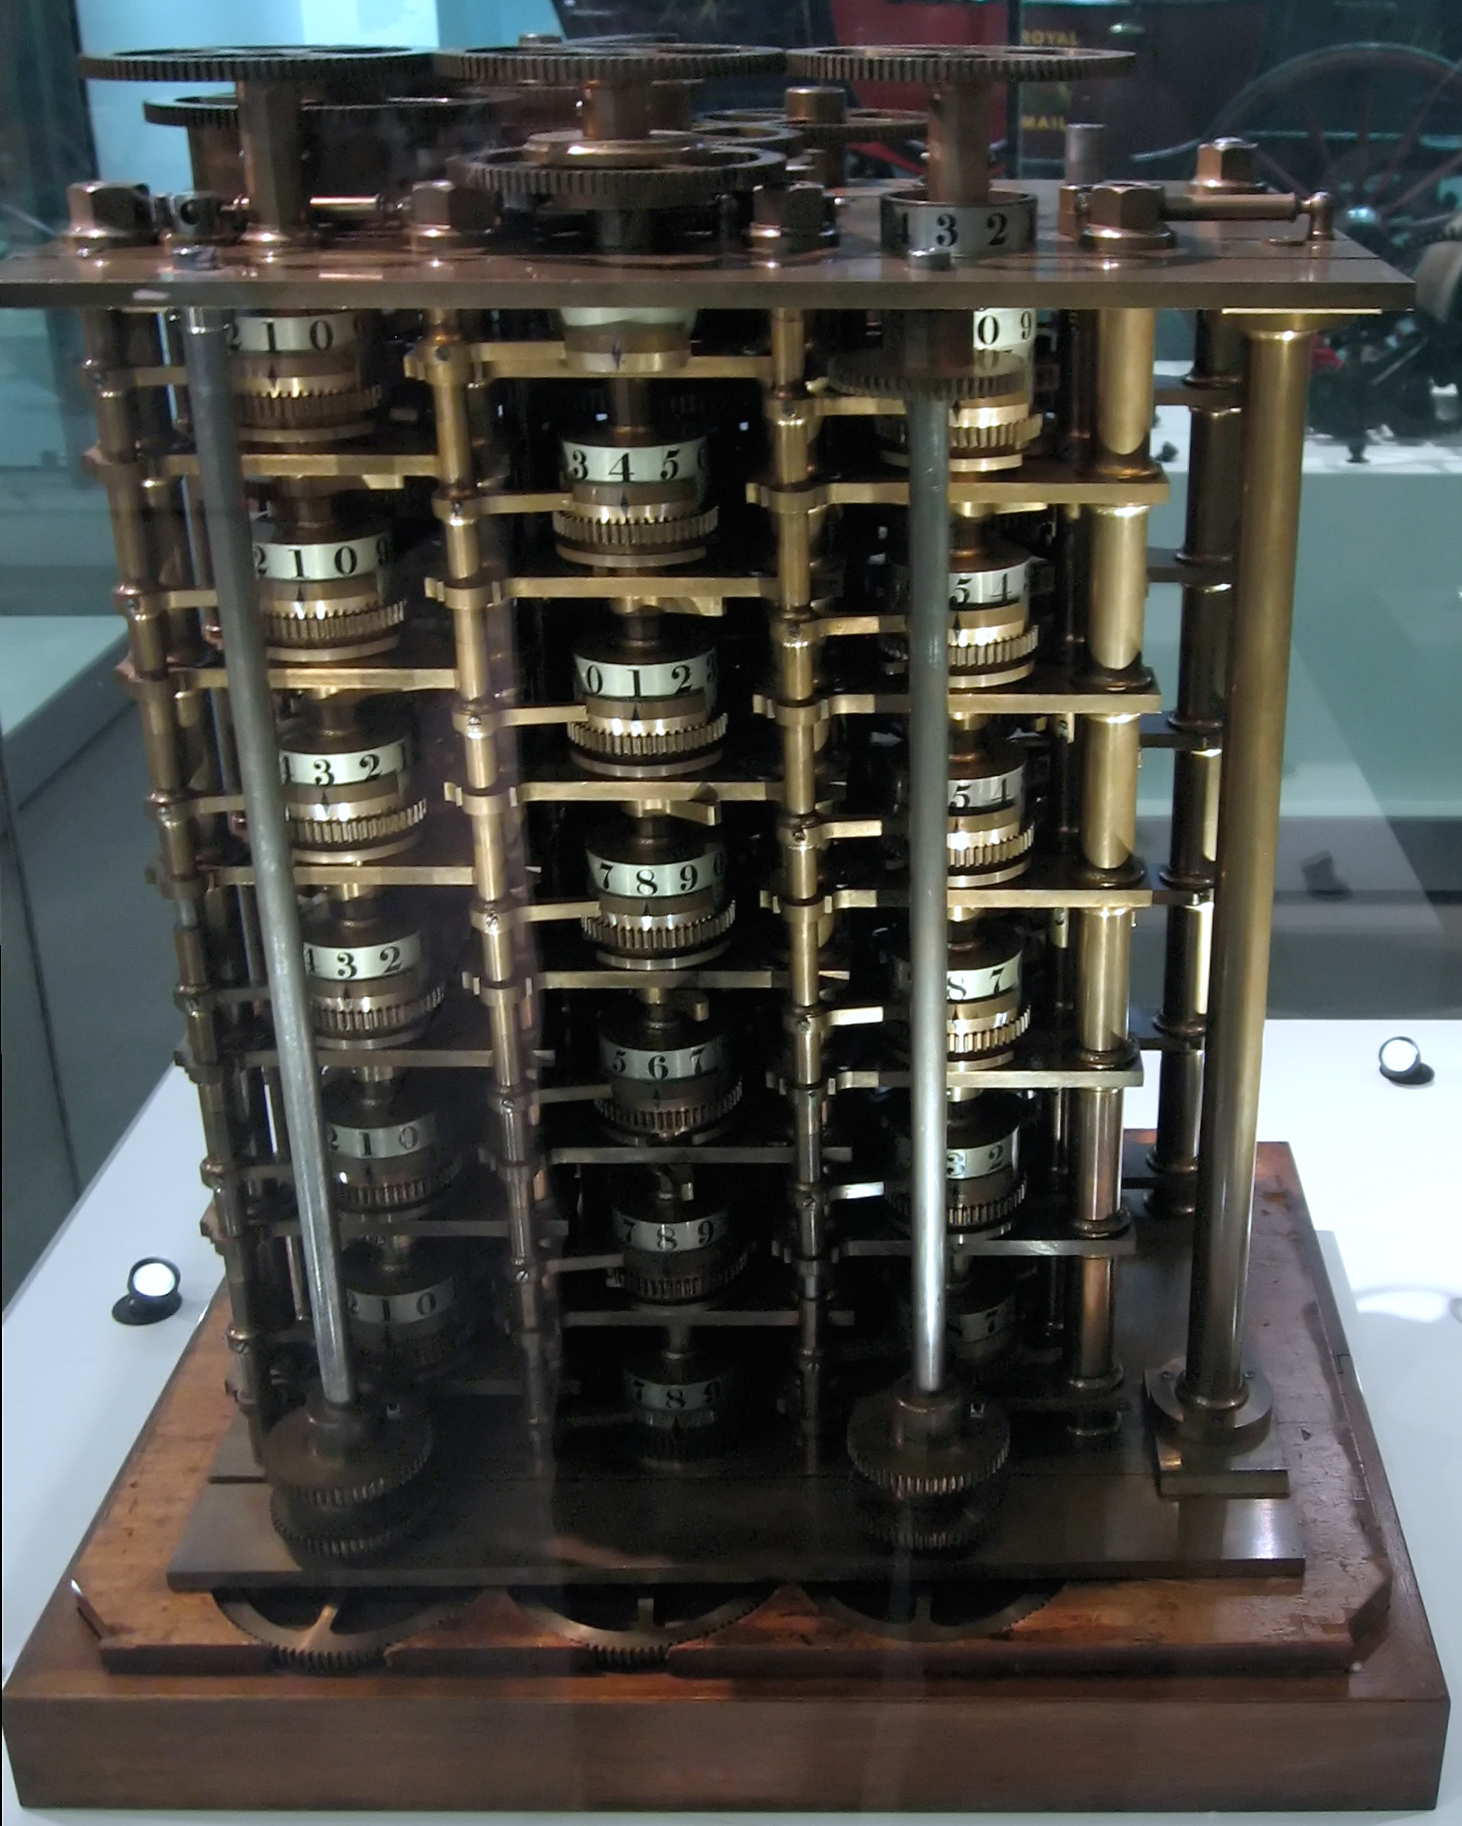 File:Charles Babbage Difference Engine No1.jpg - Wikimedia ...